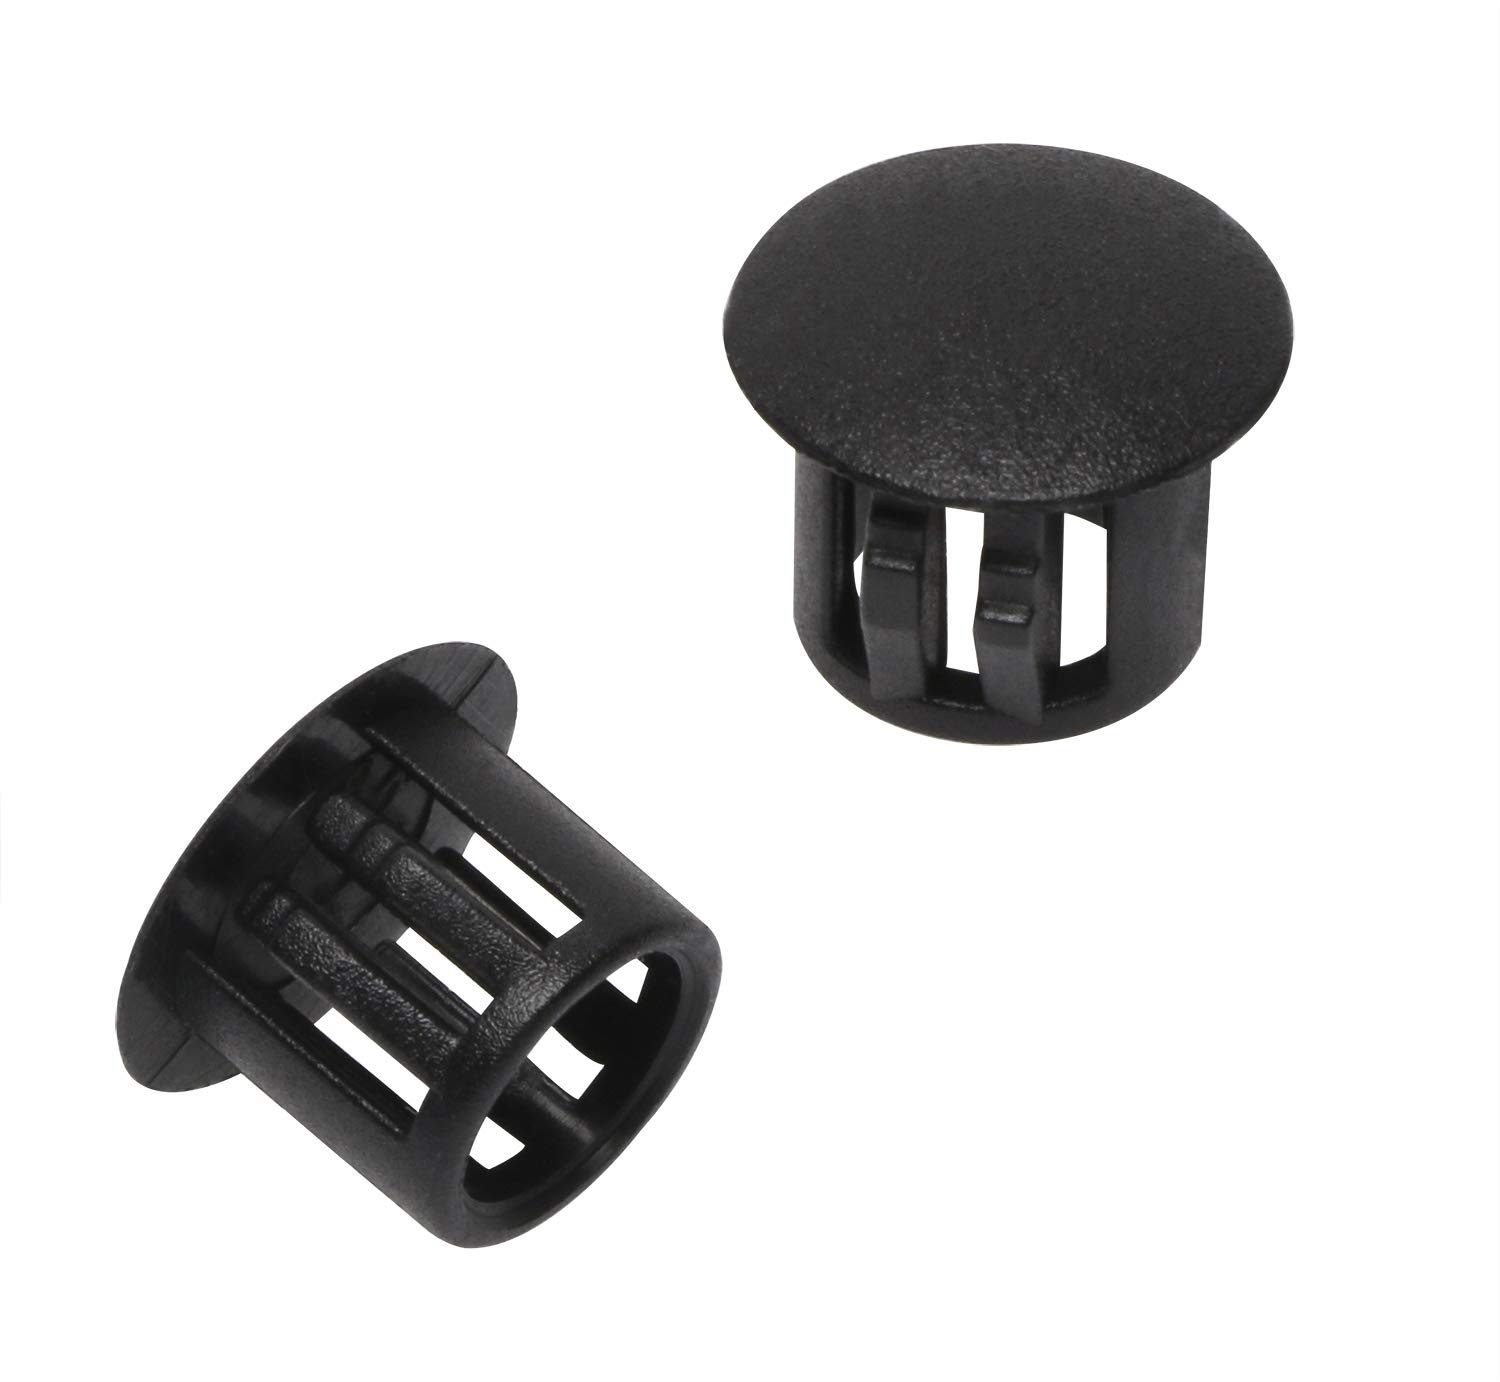 5mm//0.2inch, Black ONLYKXY 10 Pcs 5-25MM Diameter Nylon Plastic Round Snap in Type Locking Furniture Hole Plugs Button Protective Cover Cap Head Color Black